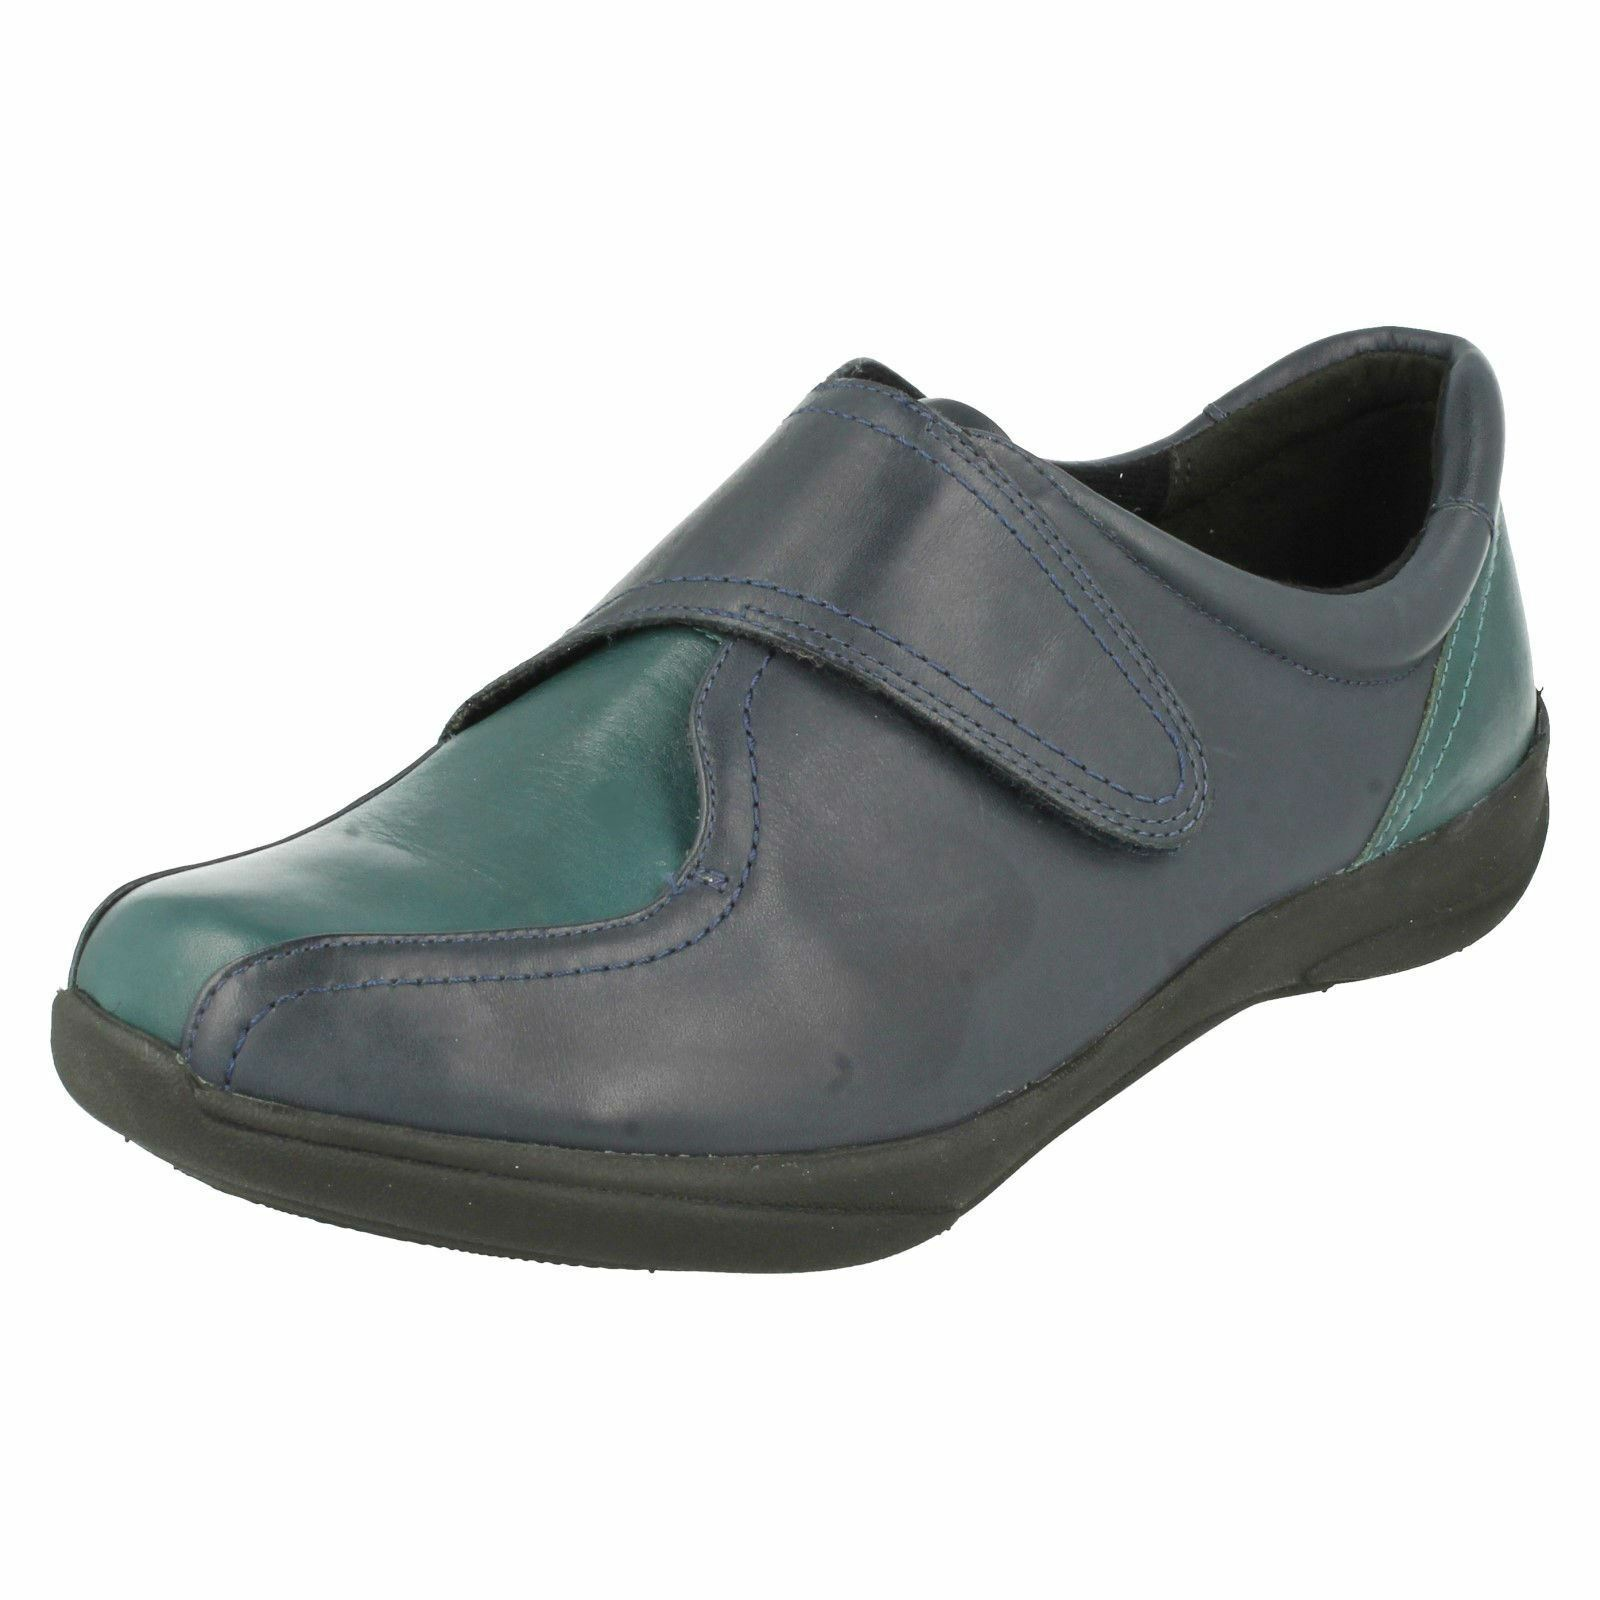 LADIES K BY CLARKS NAVY LEATHER SHOES FLAT CASUAL RIPTAPE STRAP SHOES LEATHER ETNA OAK 8a0a32